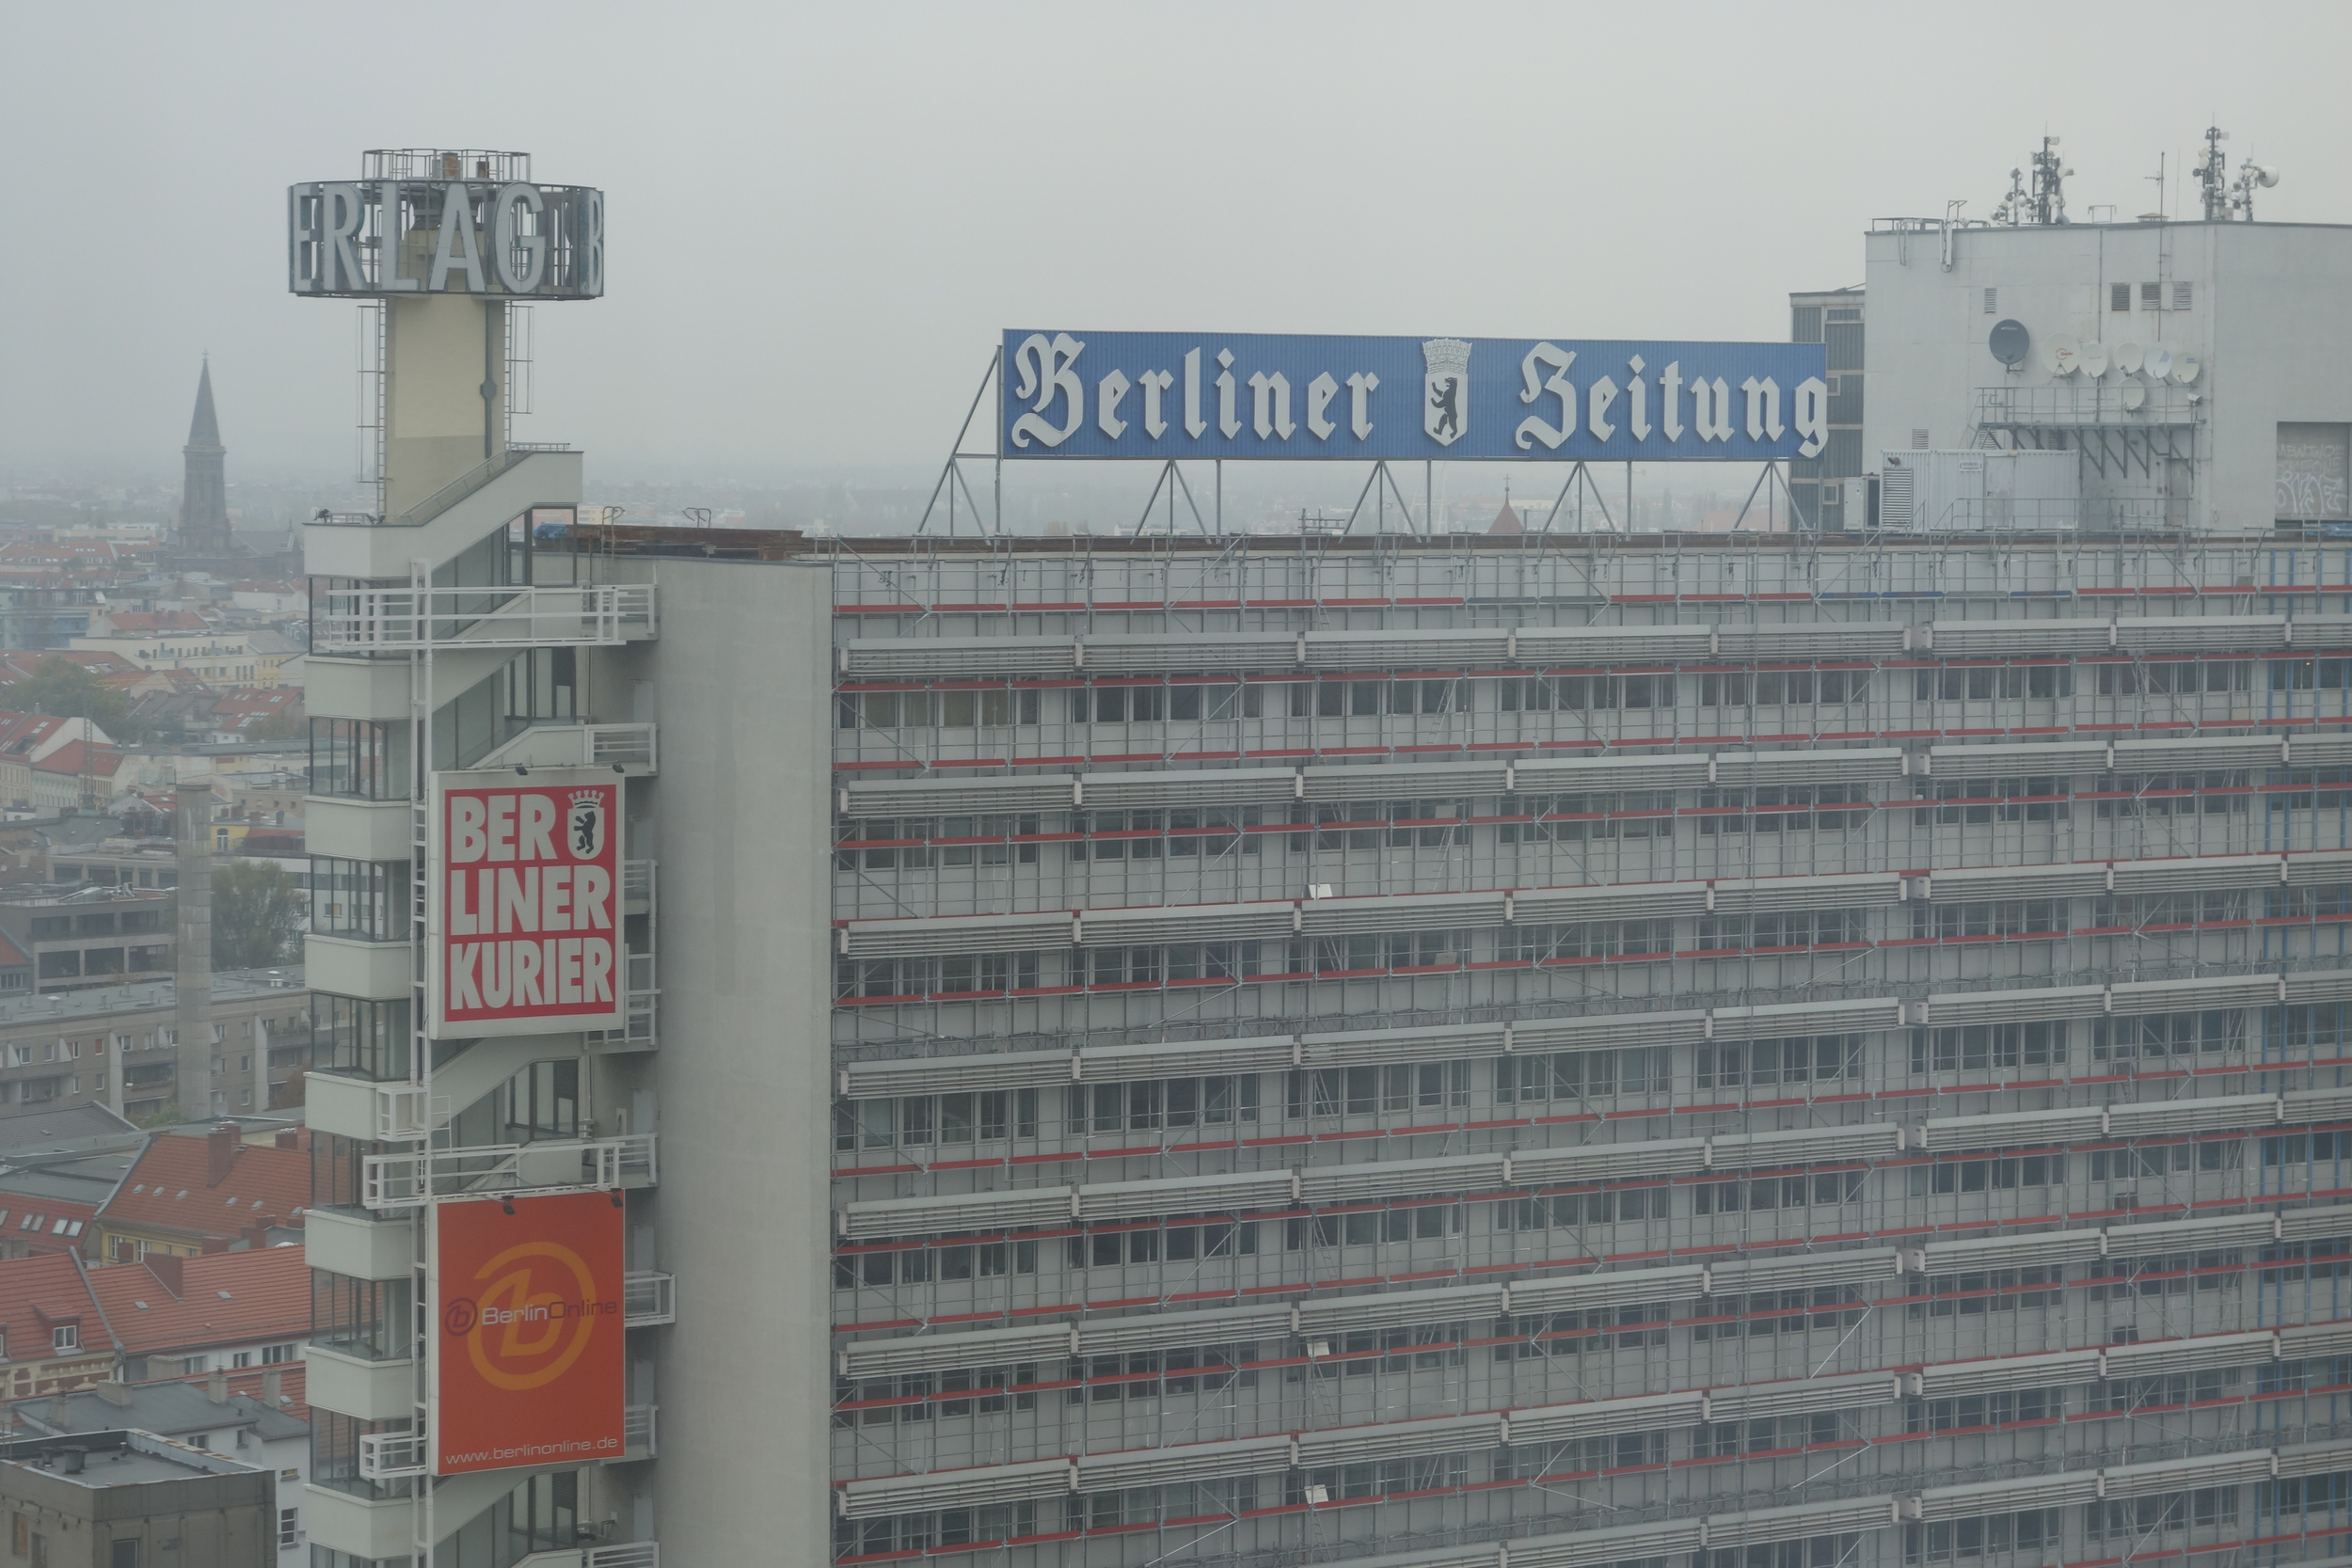 I came back to the US for a week, then headed straight to Berlin - here's the view from my upper-floor Park Inn Alexanderplatz room.